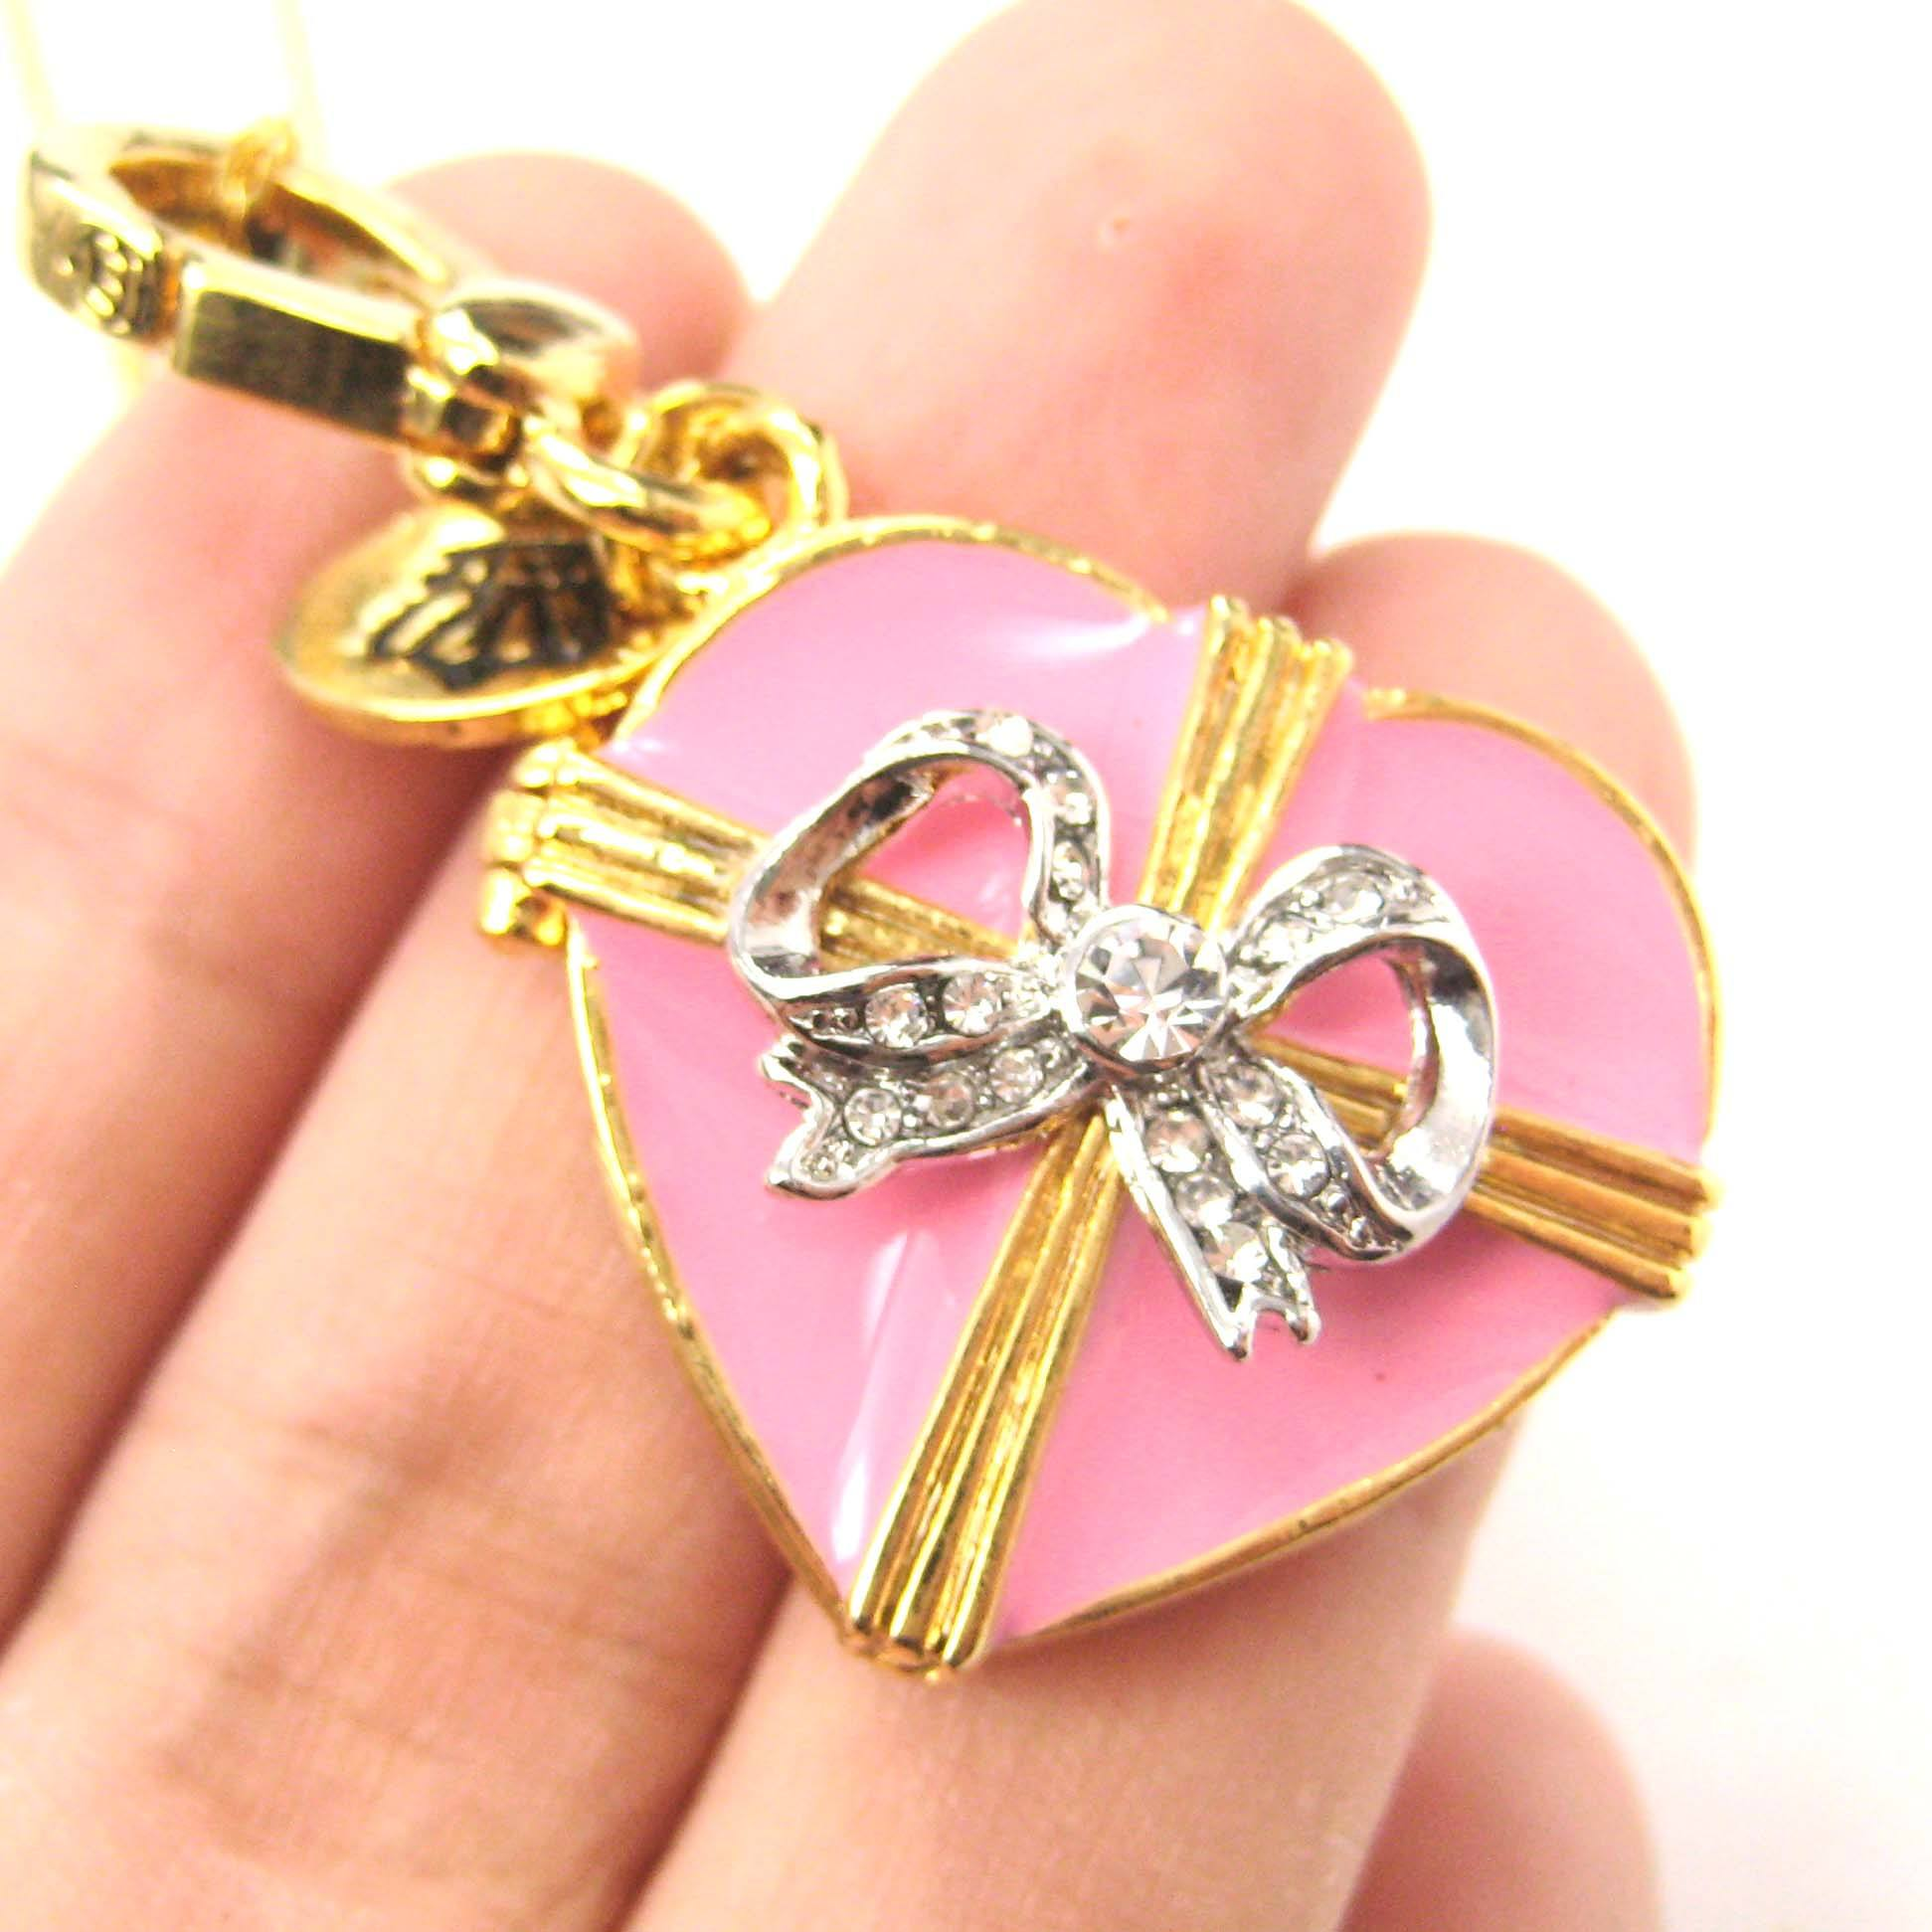 Heart Shaped Ribbon Bow Love Themed Pendant Necklace | Limited Edition